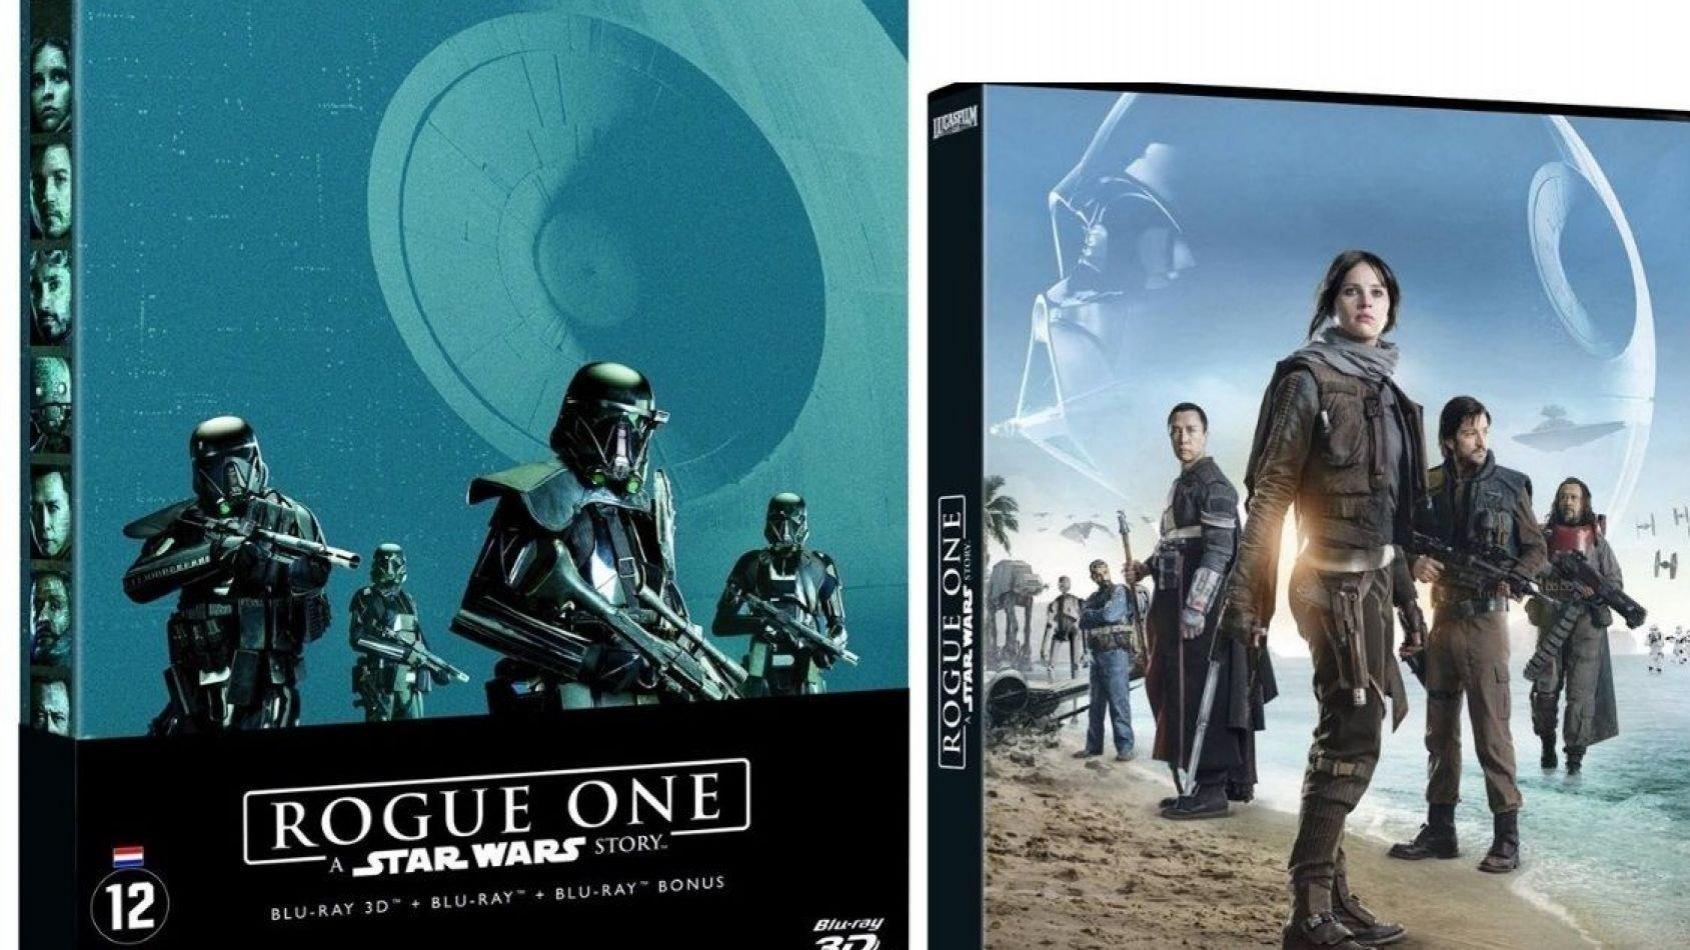 Sortie DVD et Blu-ray de Rogue One en France !